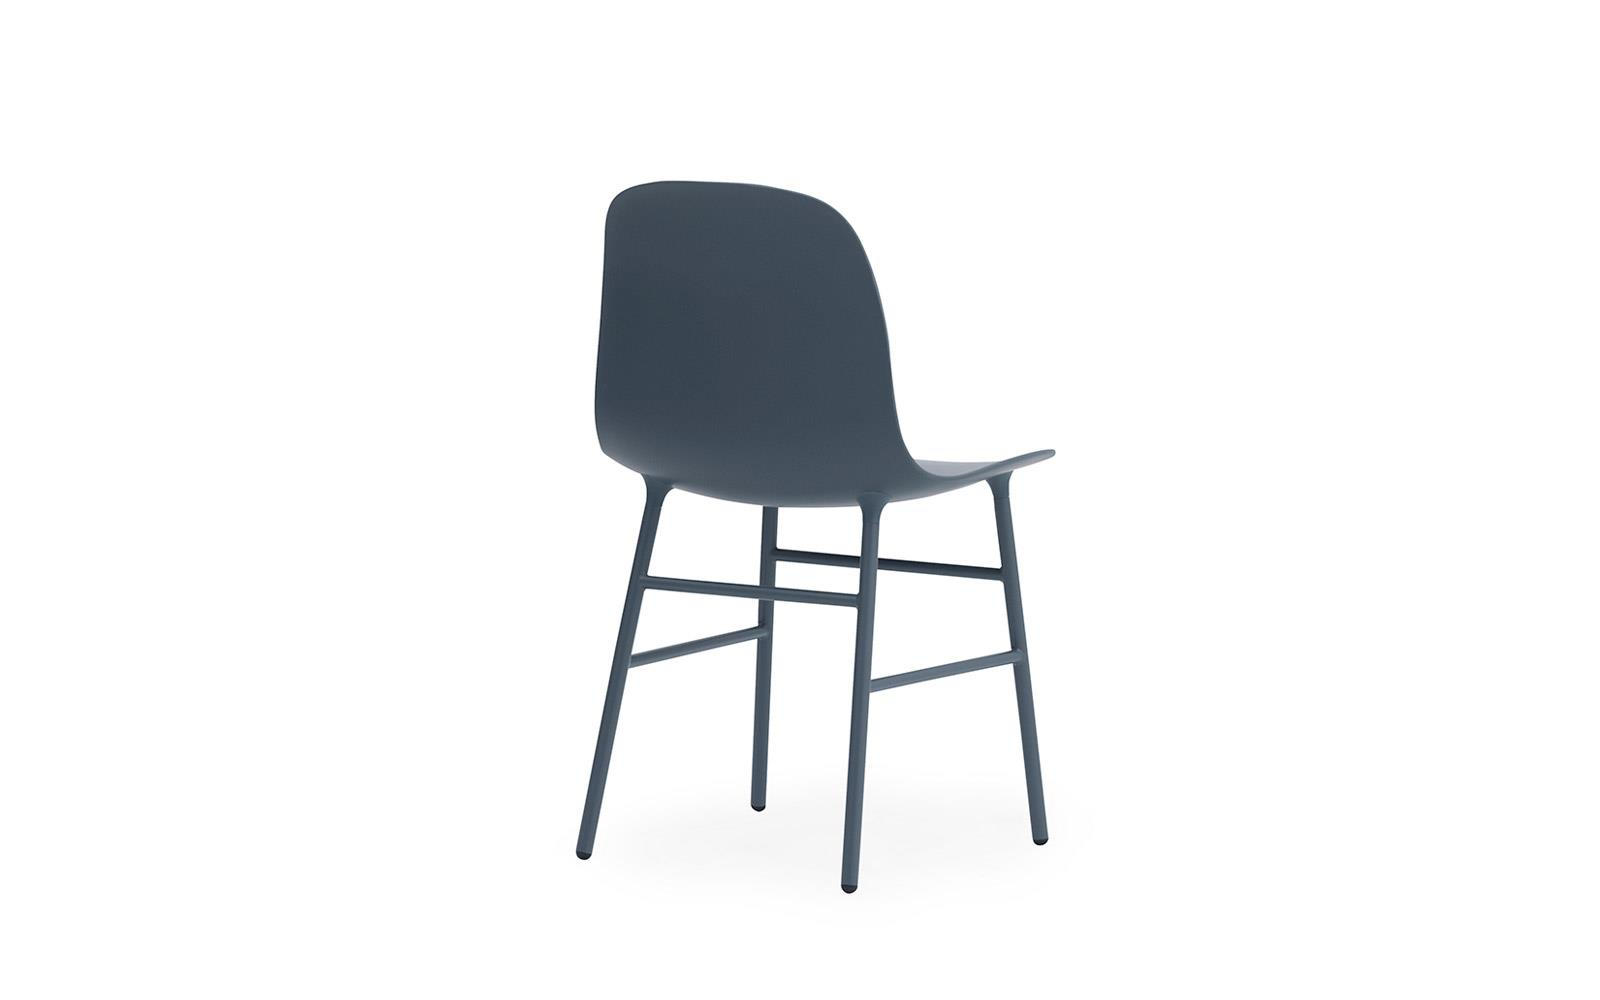 chair steel legs ralph lauren dining chairs form molded plastic shell with steel4